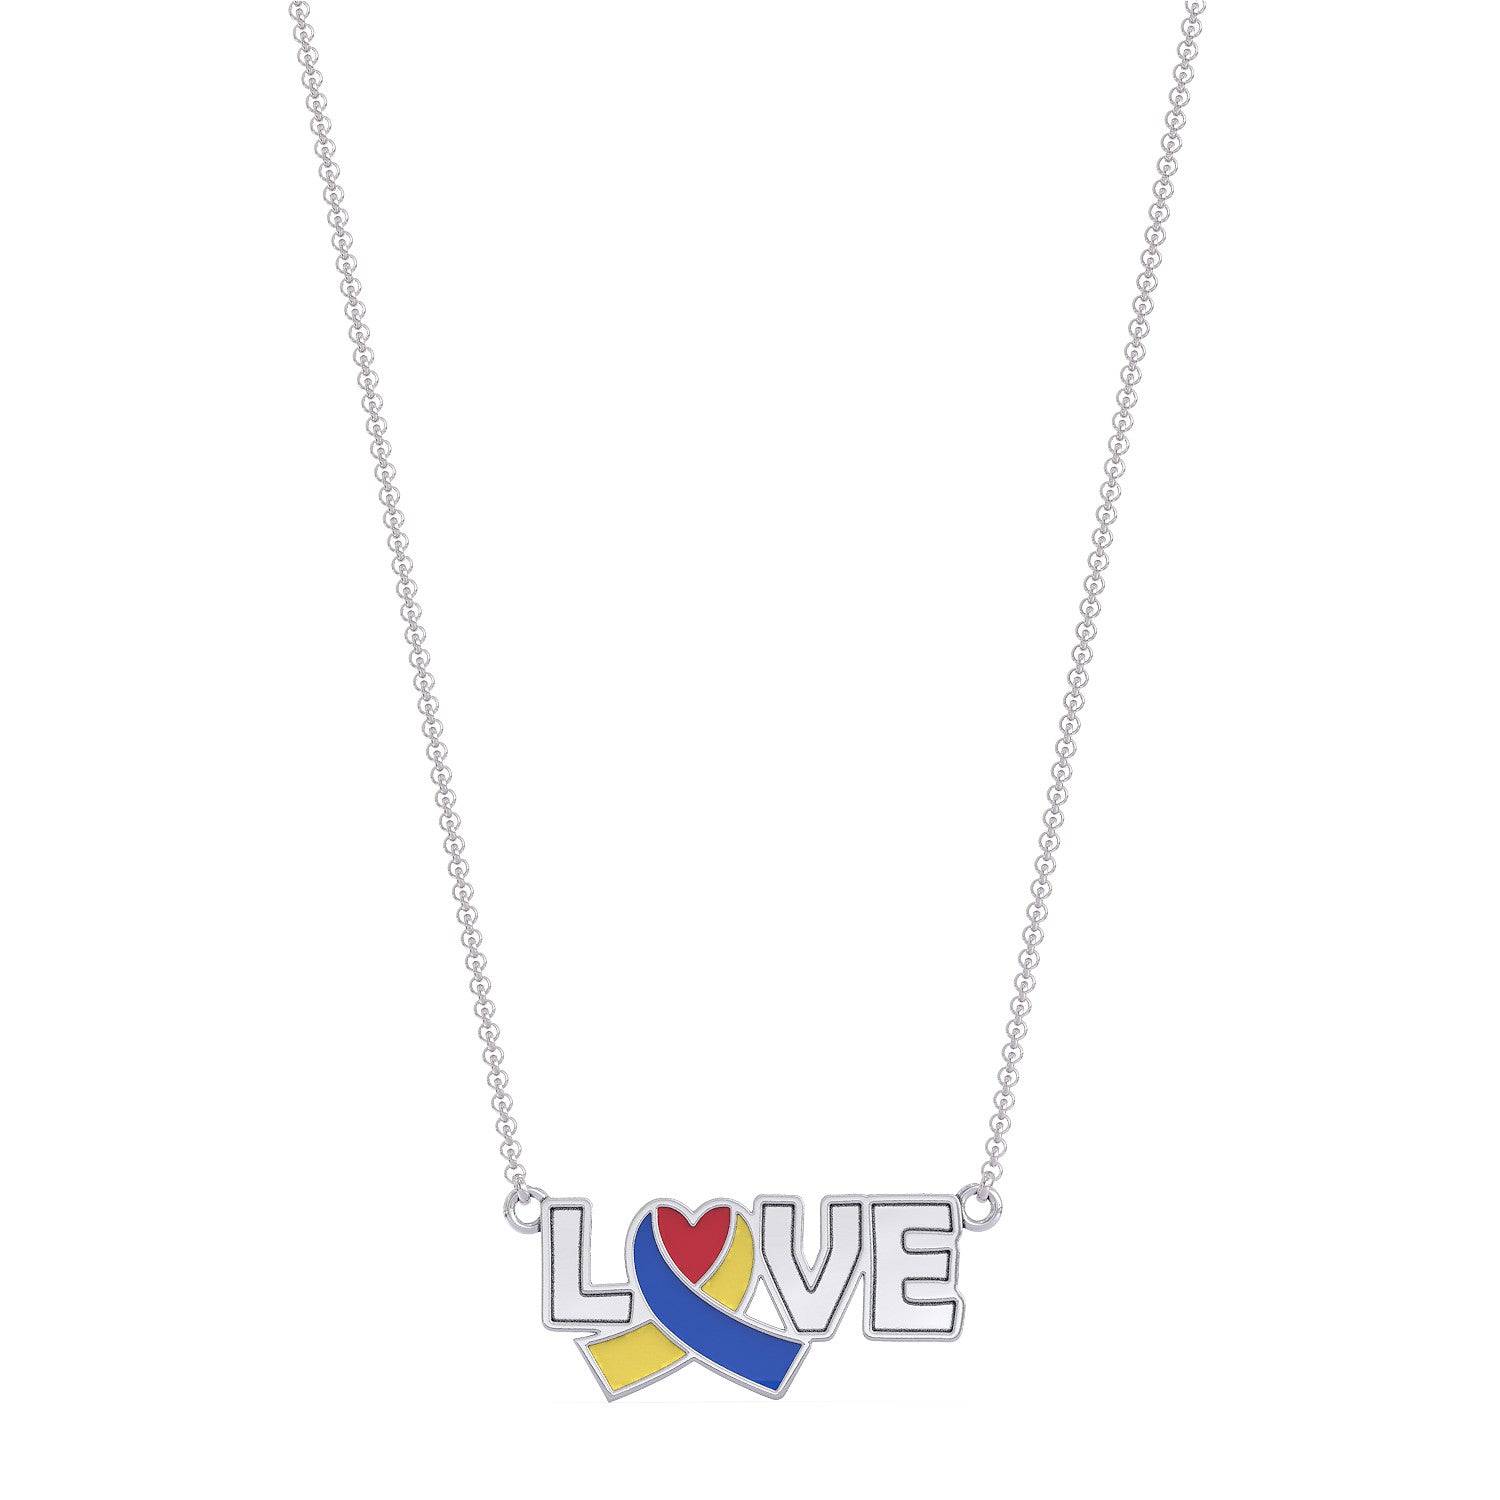 Down Syndrome Awareness LOVE Necklace